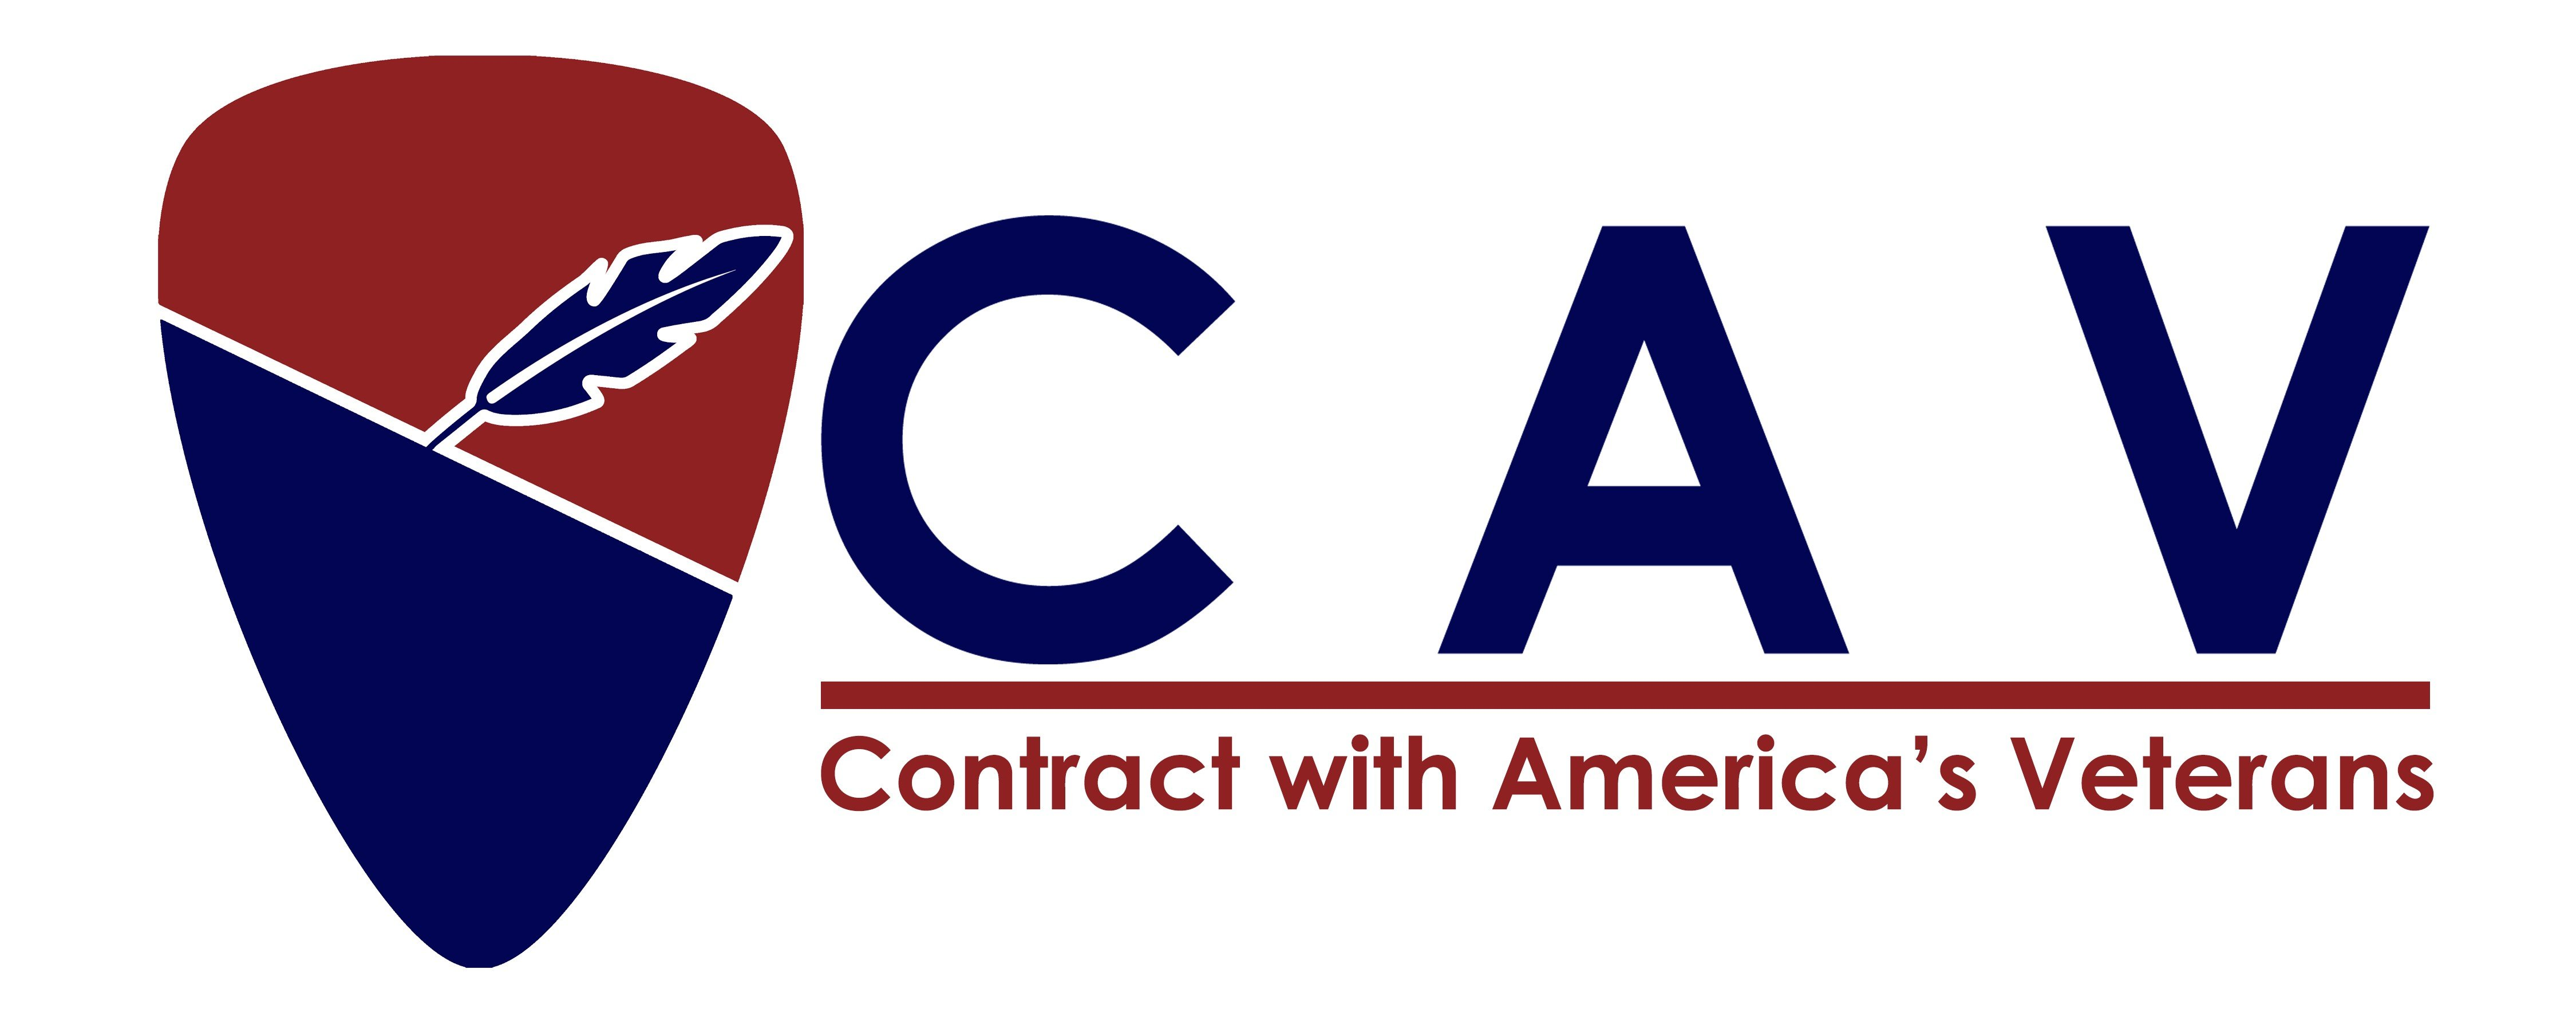 Contract With America's Veterans - Logo